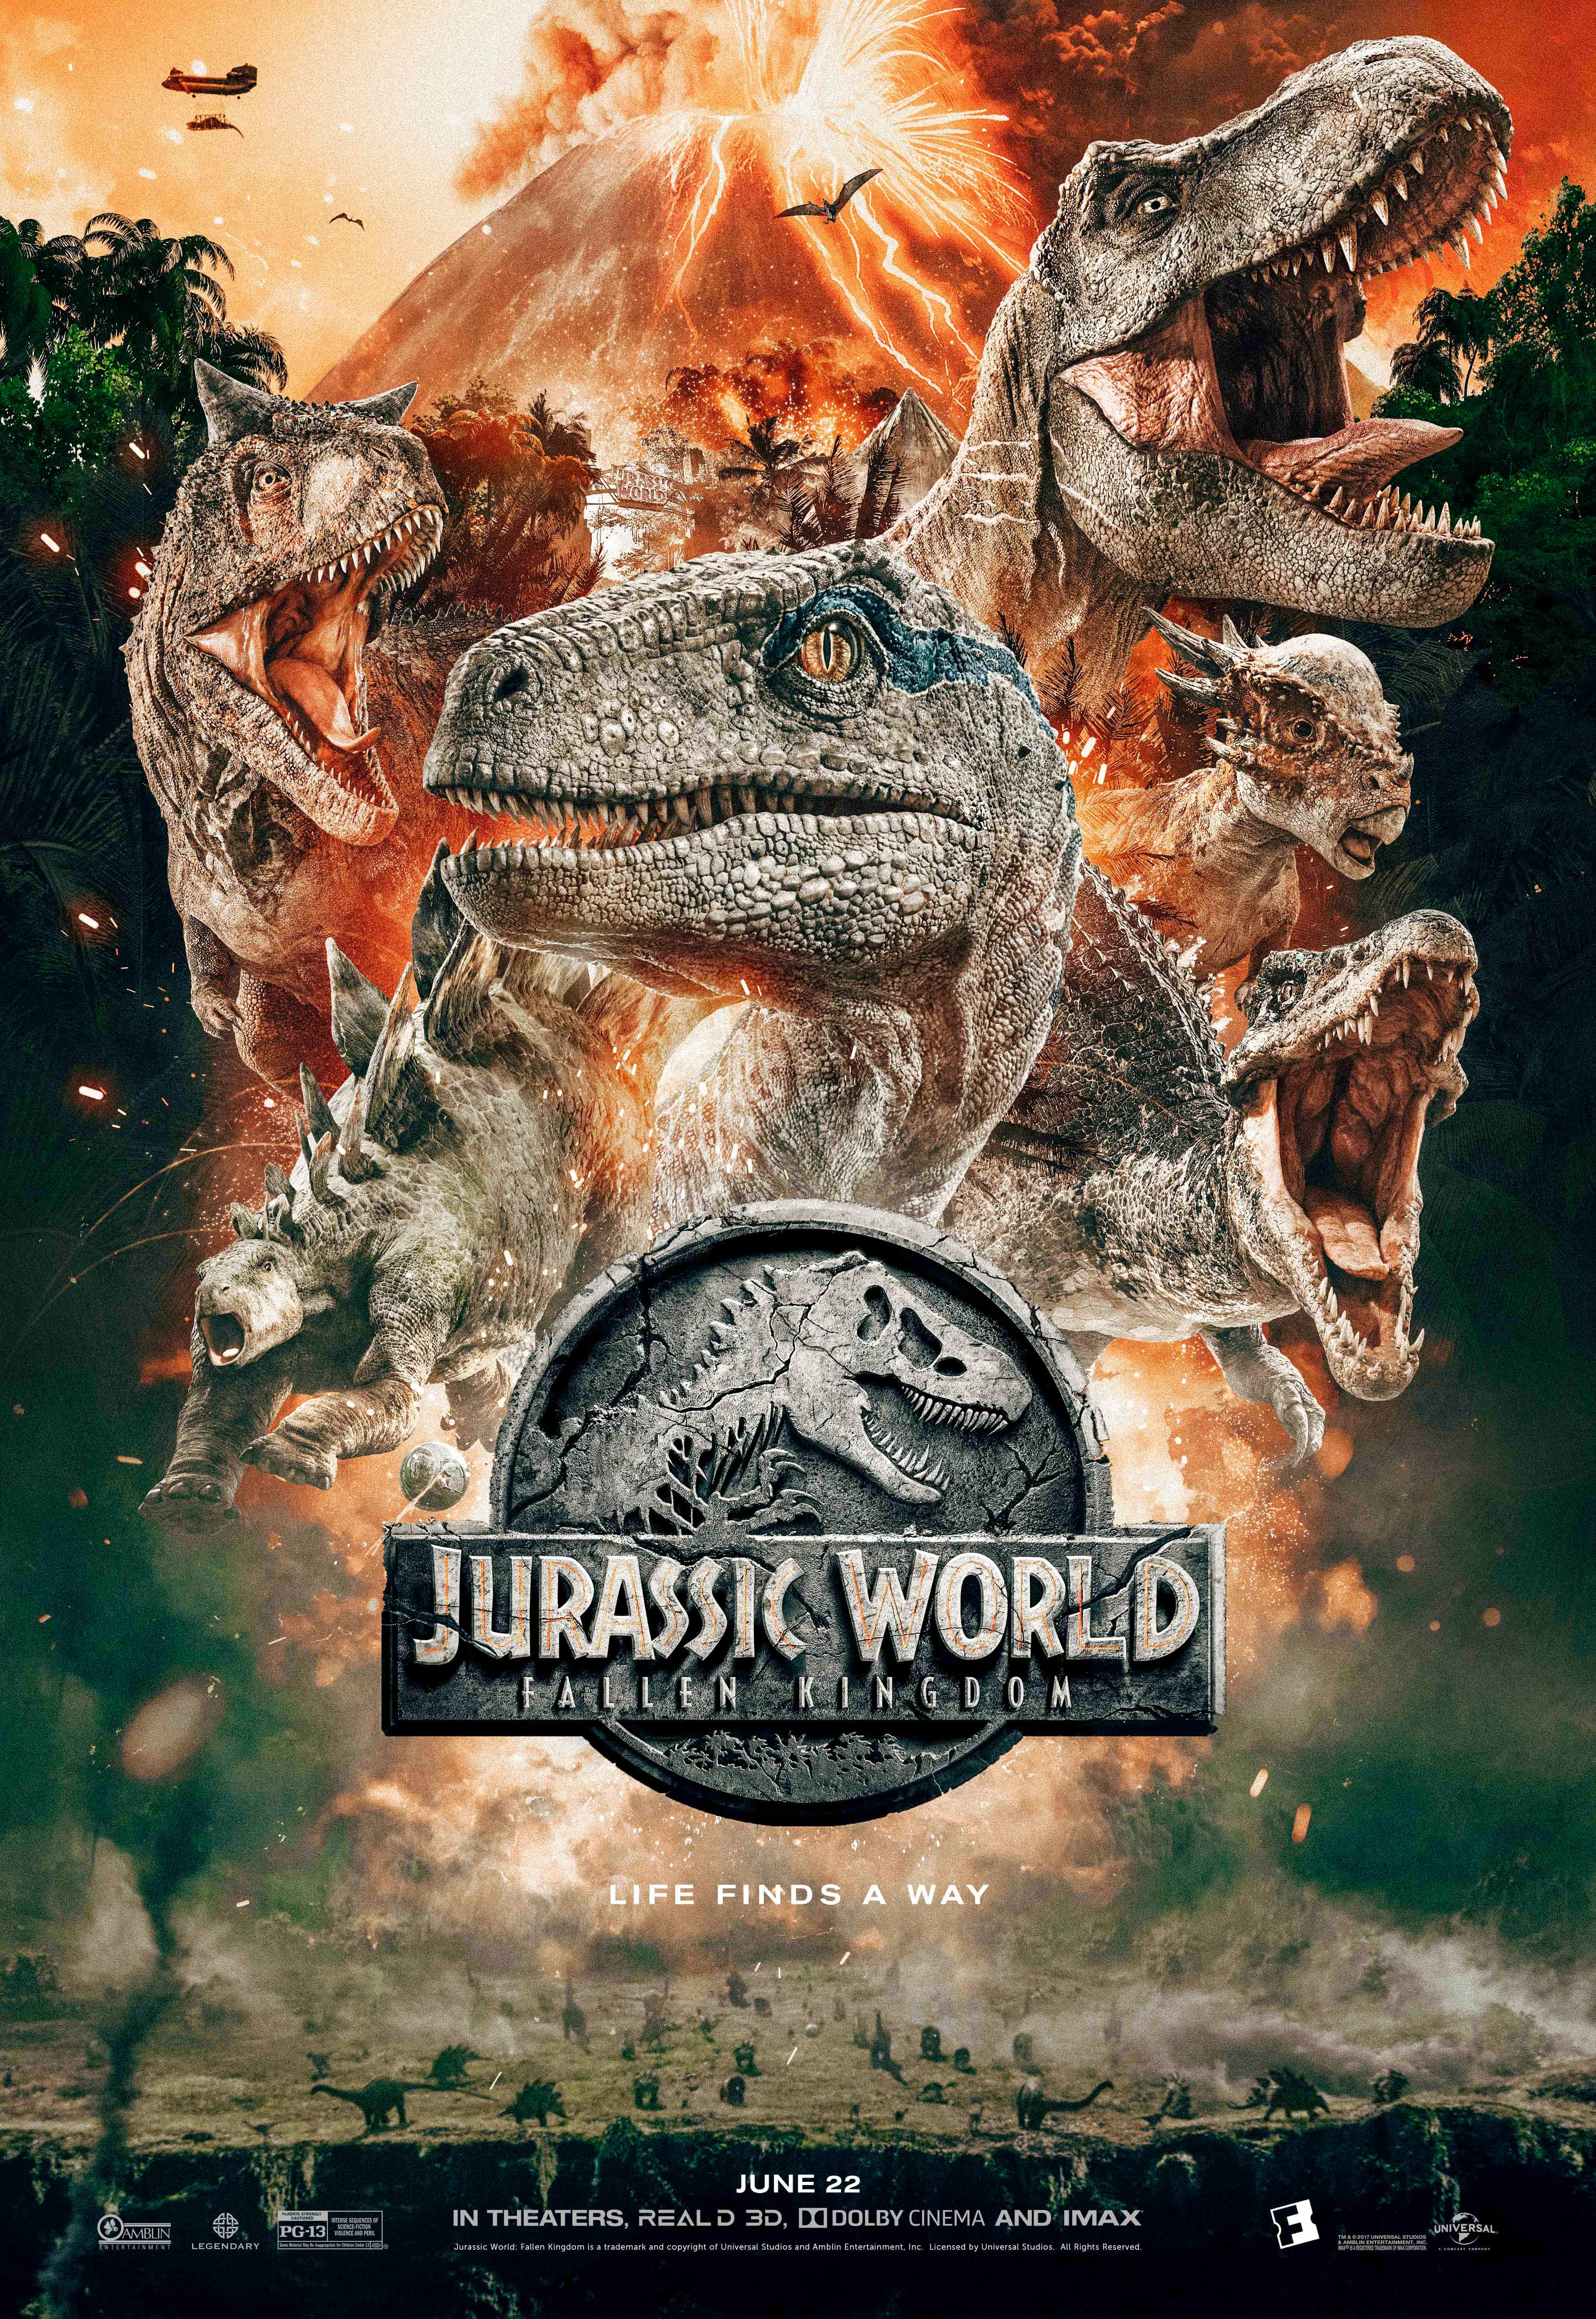 In June of 2018 I was very excited to  announce that I partnered with Universal Pictures and Fandango to design an exclusive  Jurassic World Fallen Kindom movie poster.